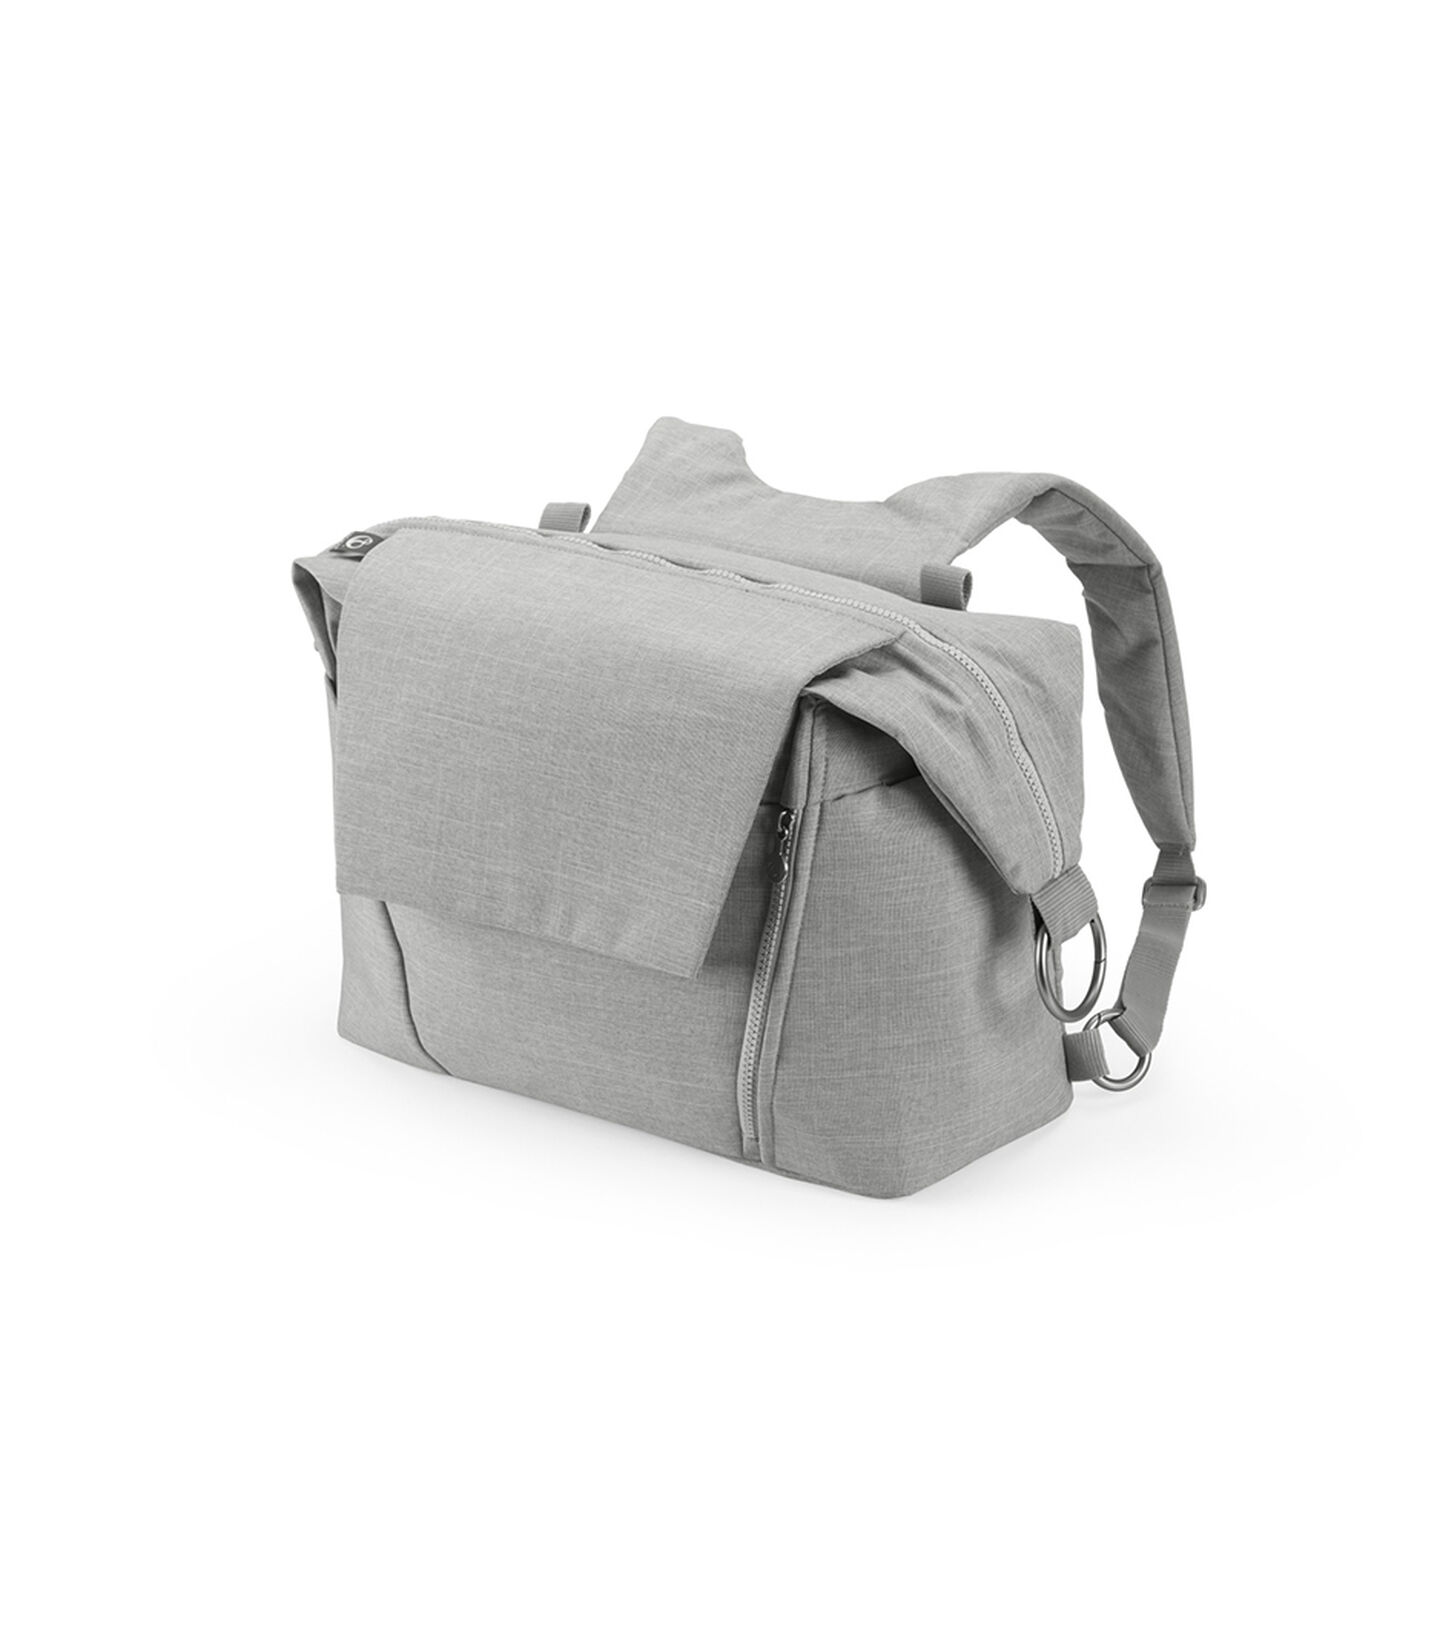 Stokke® Changing Bag Grey Melange, Grey Melange, mainview view 2